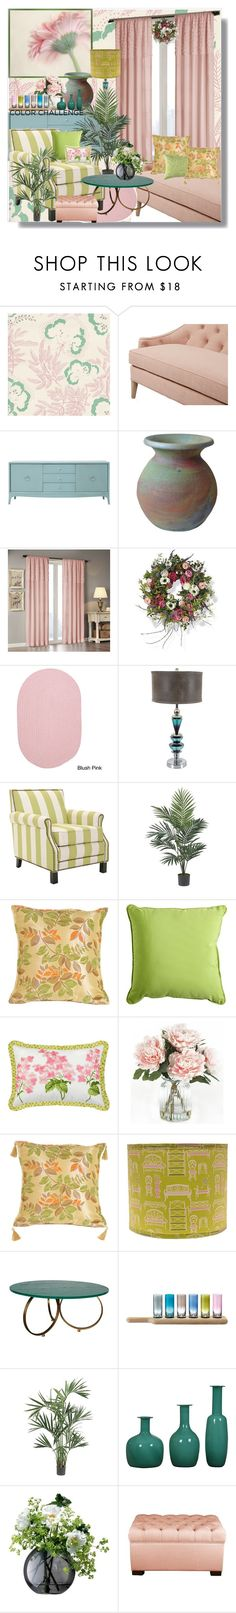 """Color Challenge: Green and Blush"" by ann-kelley14 on Polyvore featuring interior, interiors, interior design, home, home decor, interior decorating, Dana Gibson, Redford House, Madison Park and Frontgate"